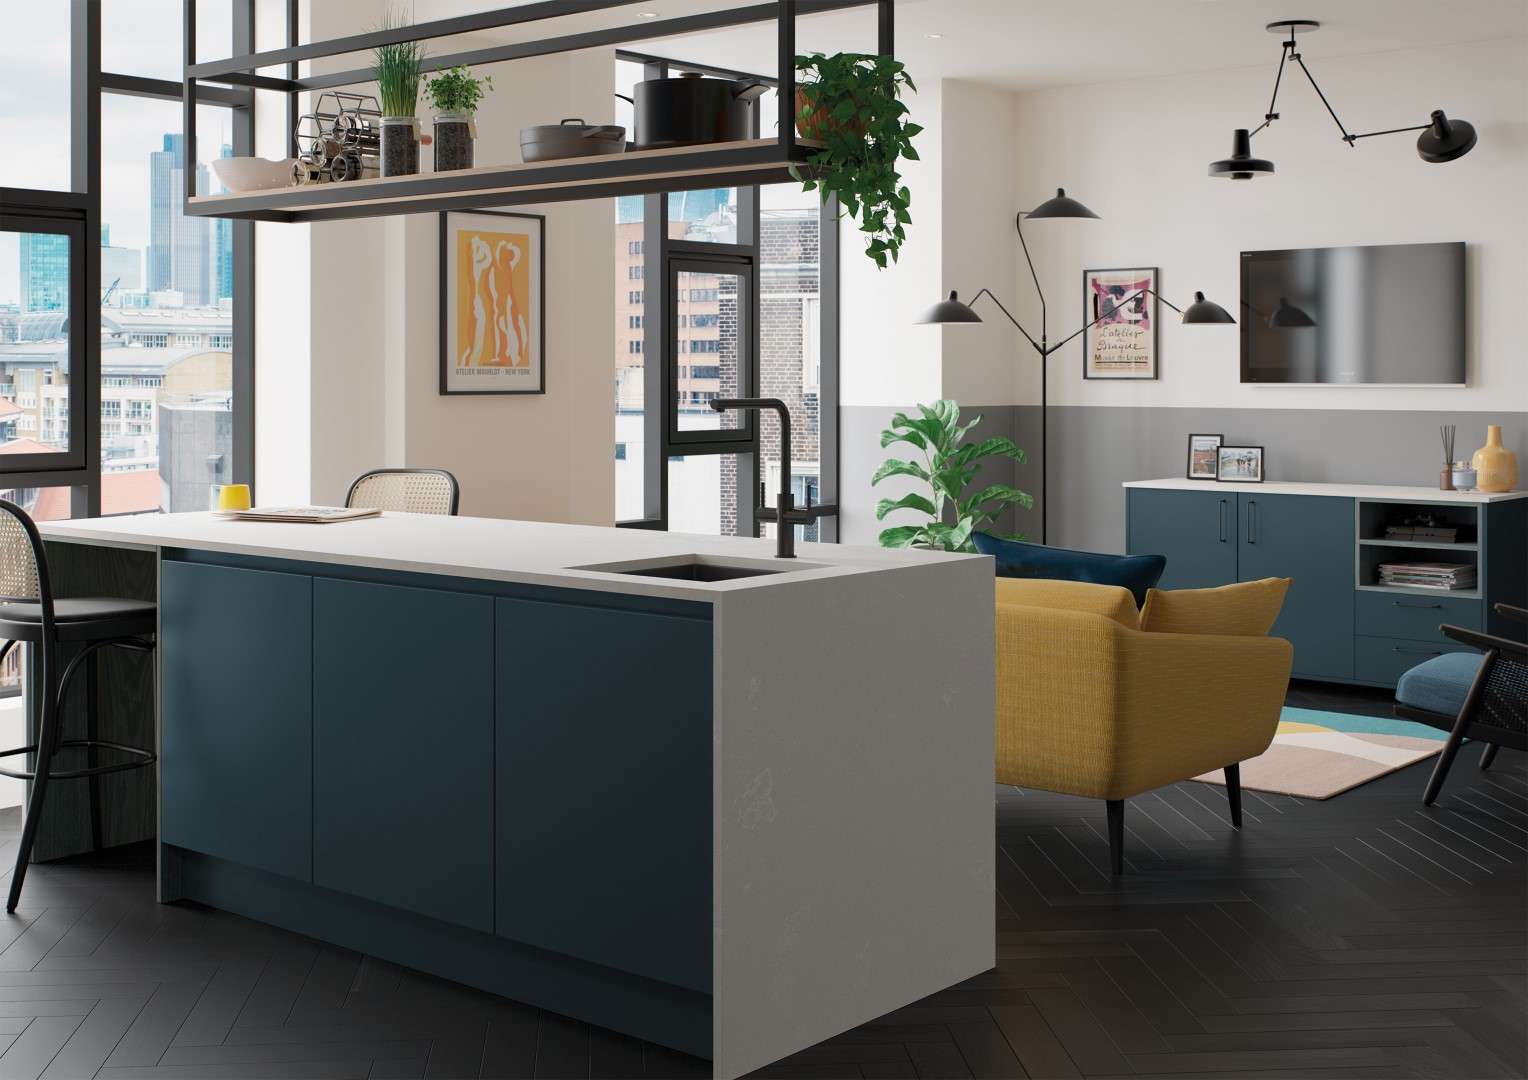 Kelso Stained Pacific Blue and Zola Matte Marine - Kitchen Design - Alan Kelly Kitchens Waterford - 1